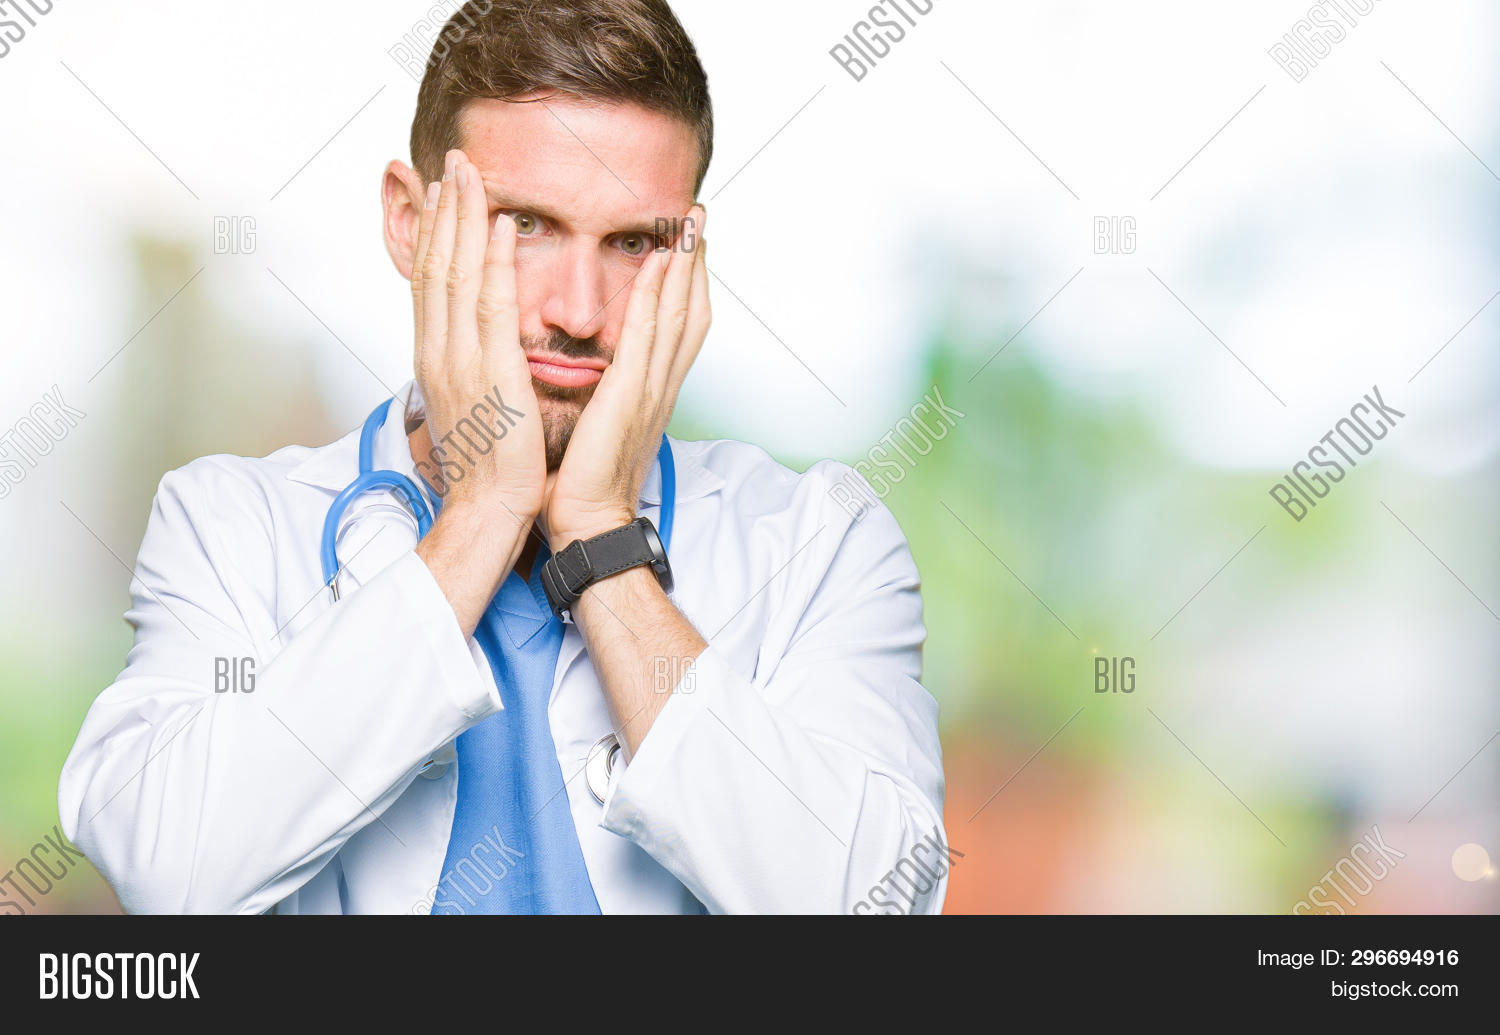 Handsome Doctor Man Image & Photo (Free Trial)   Bigstock